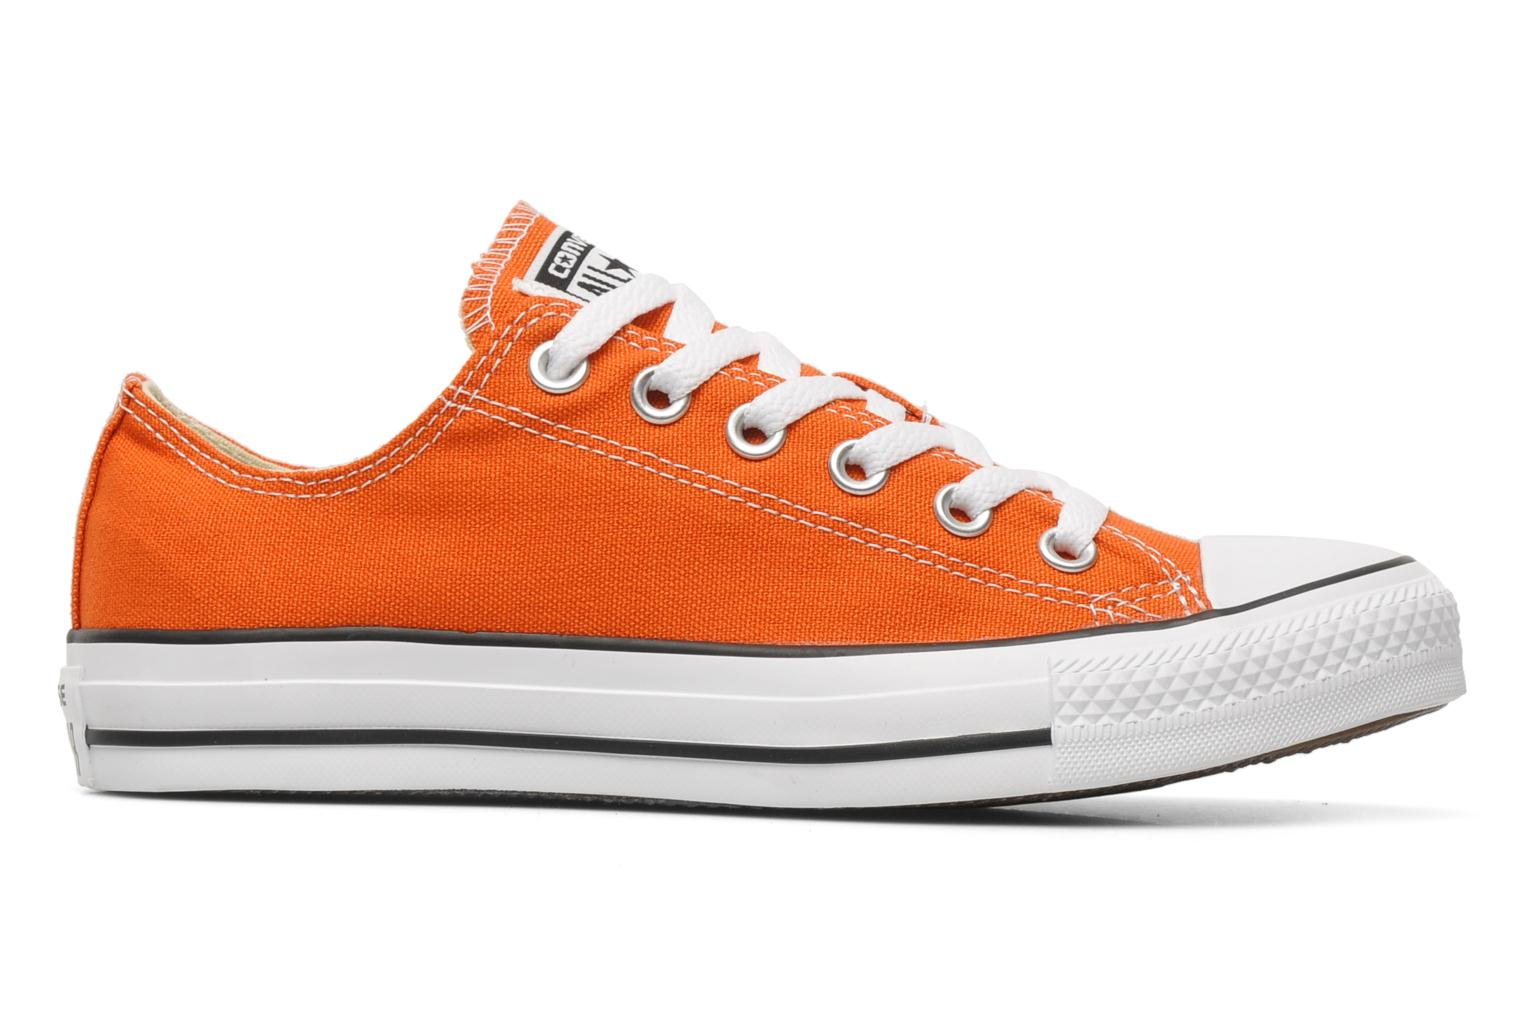 Converse Chuck Taylor All Star Ox W Trainers in Orange at